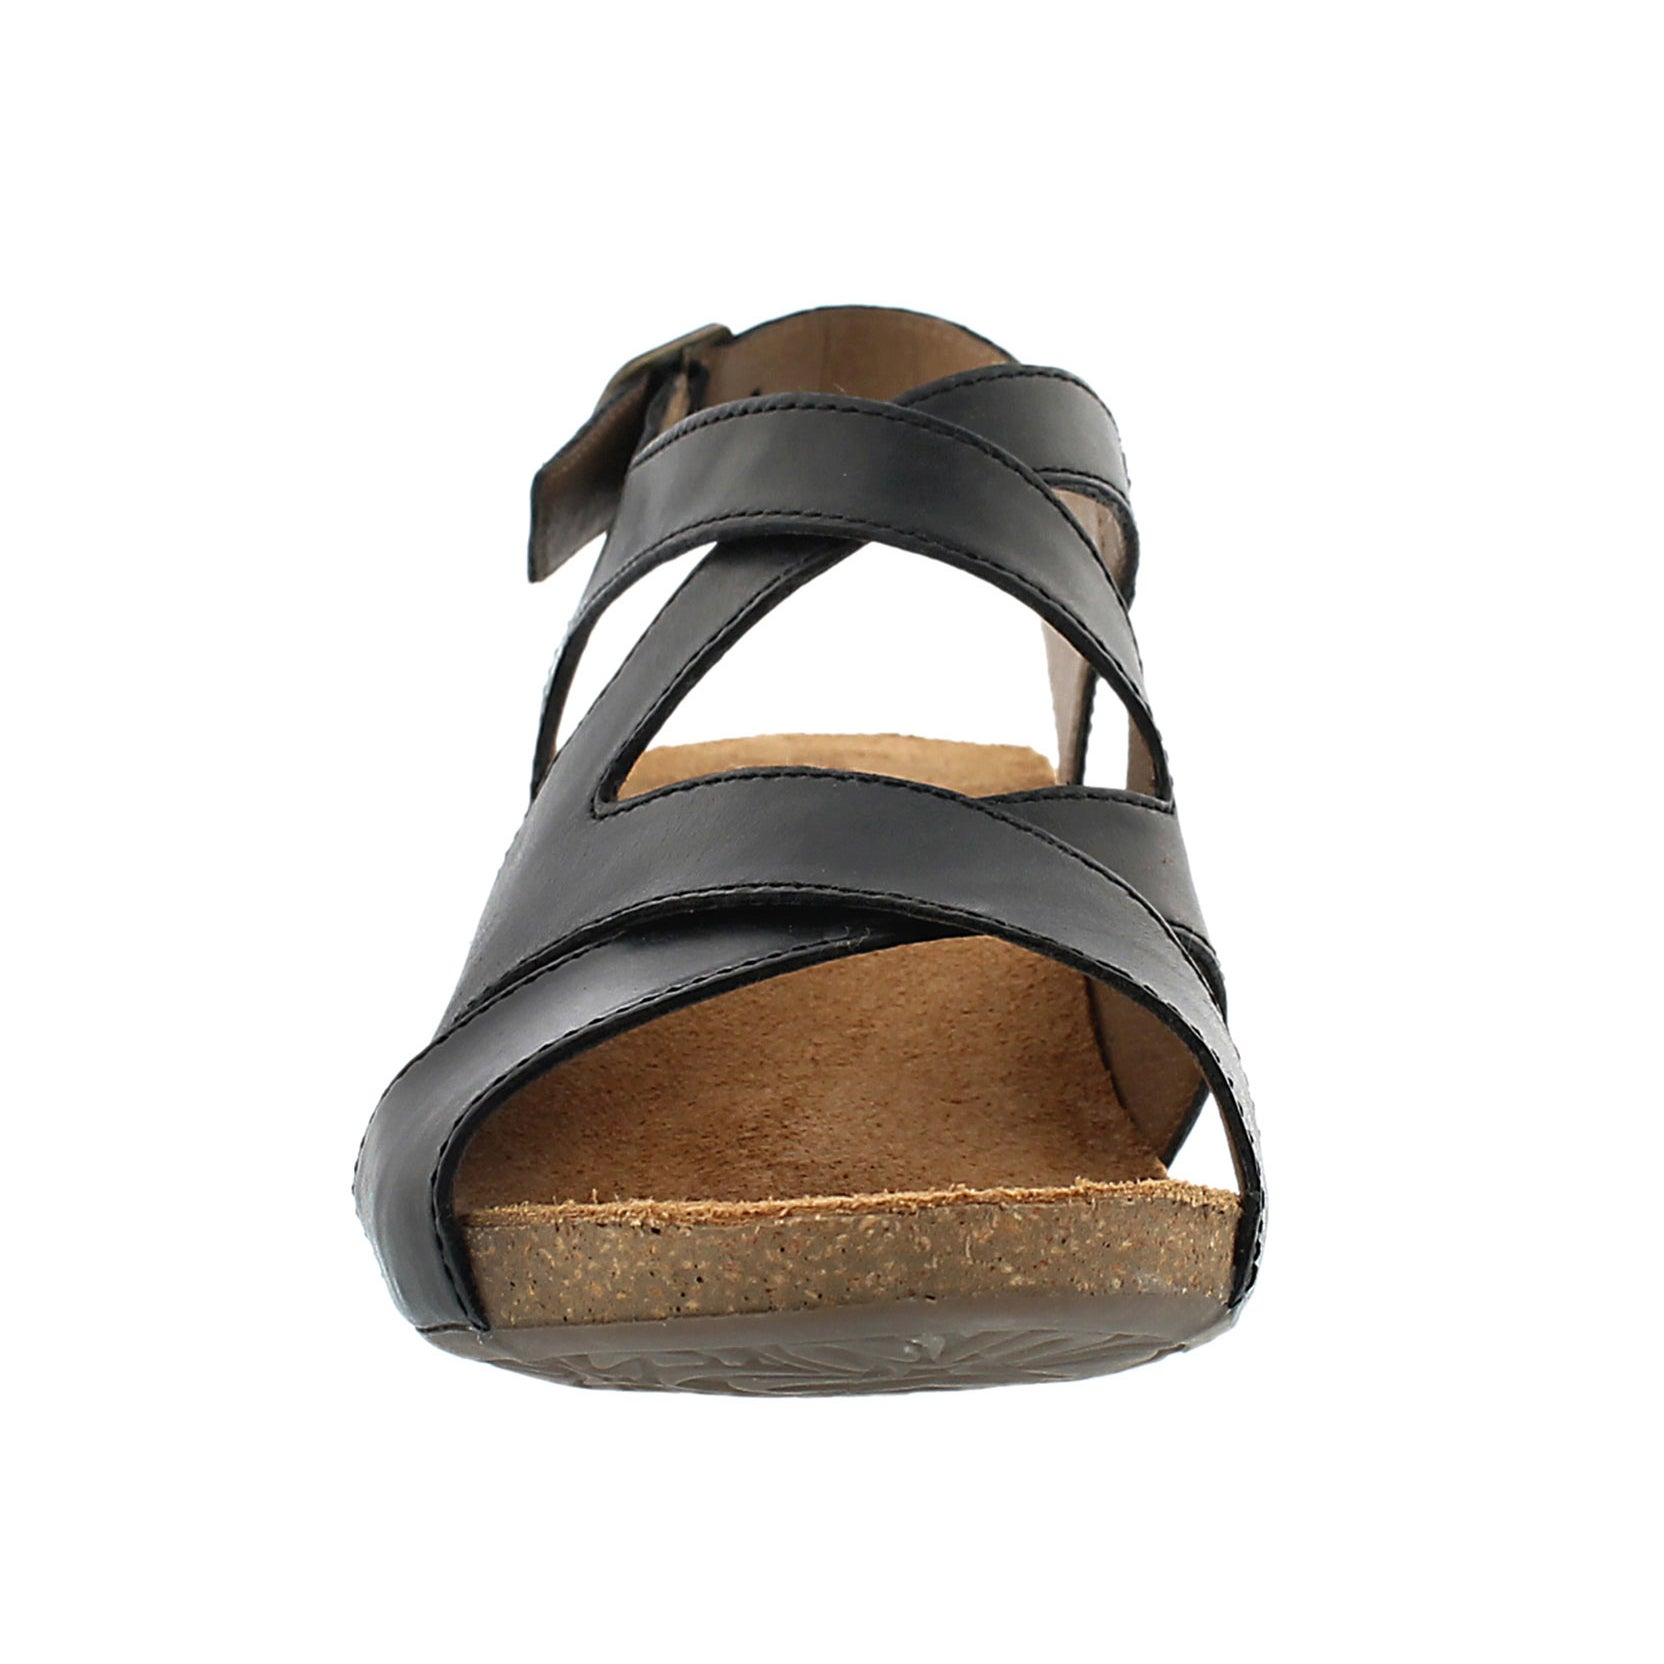 Lds Ruth 15 blk cross strap dress sandal